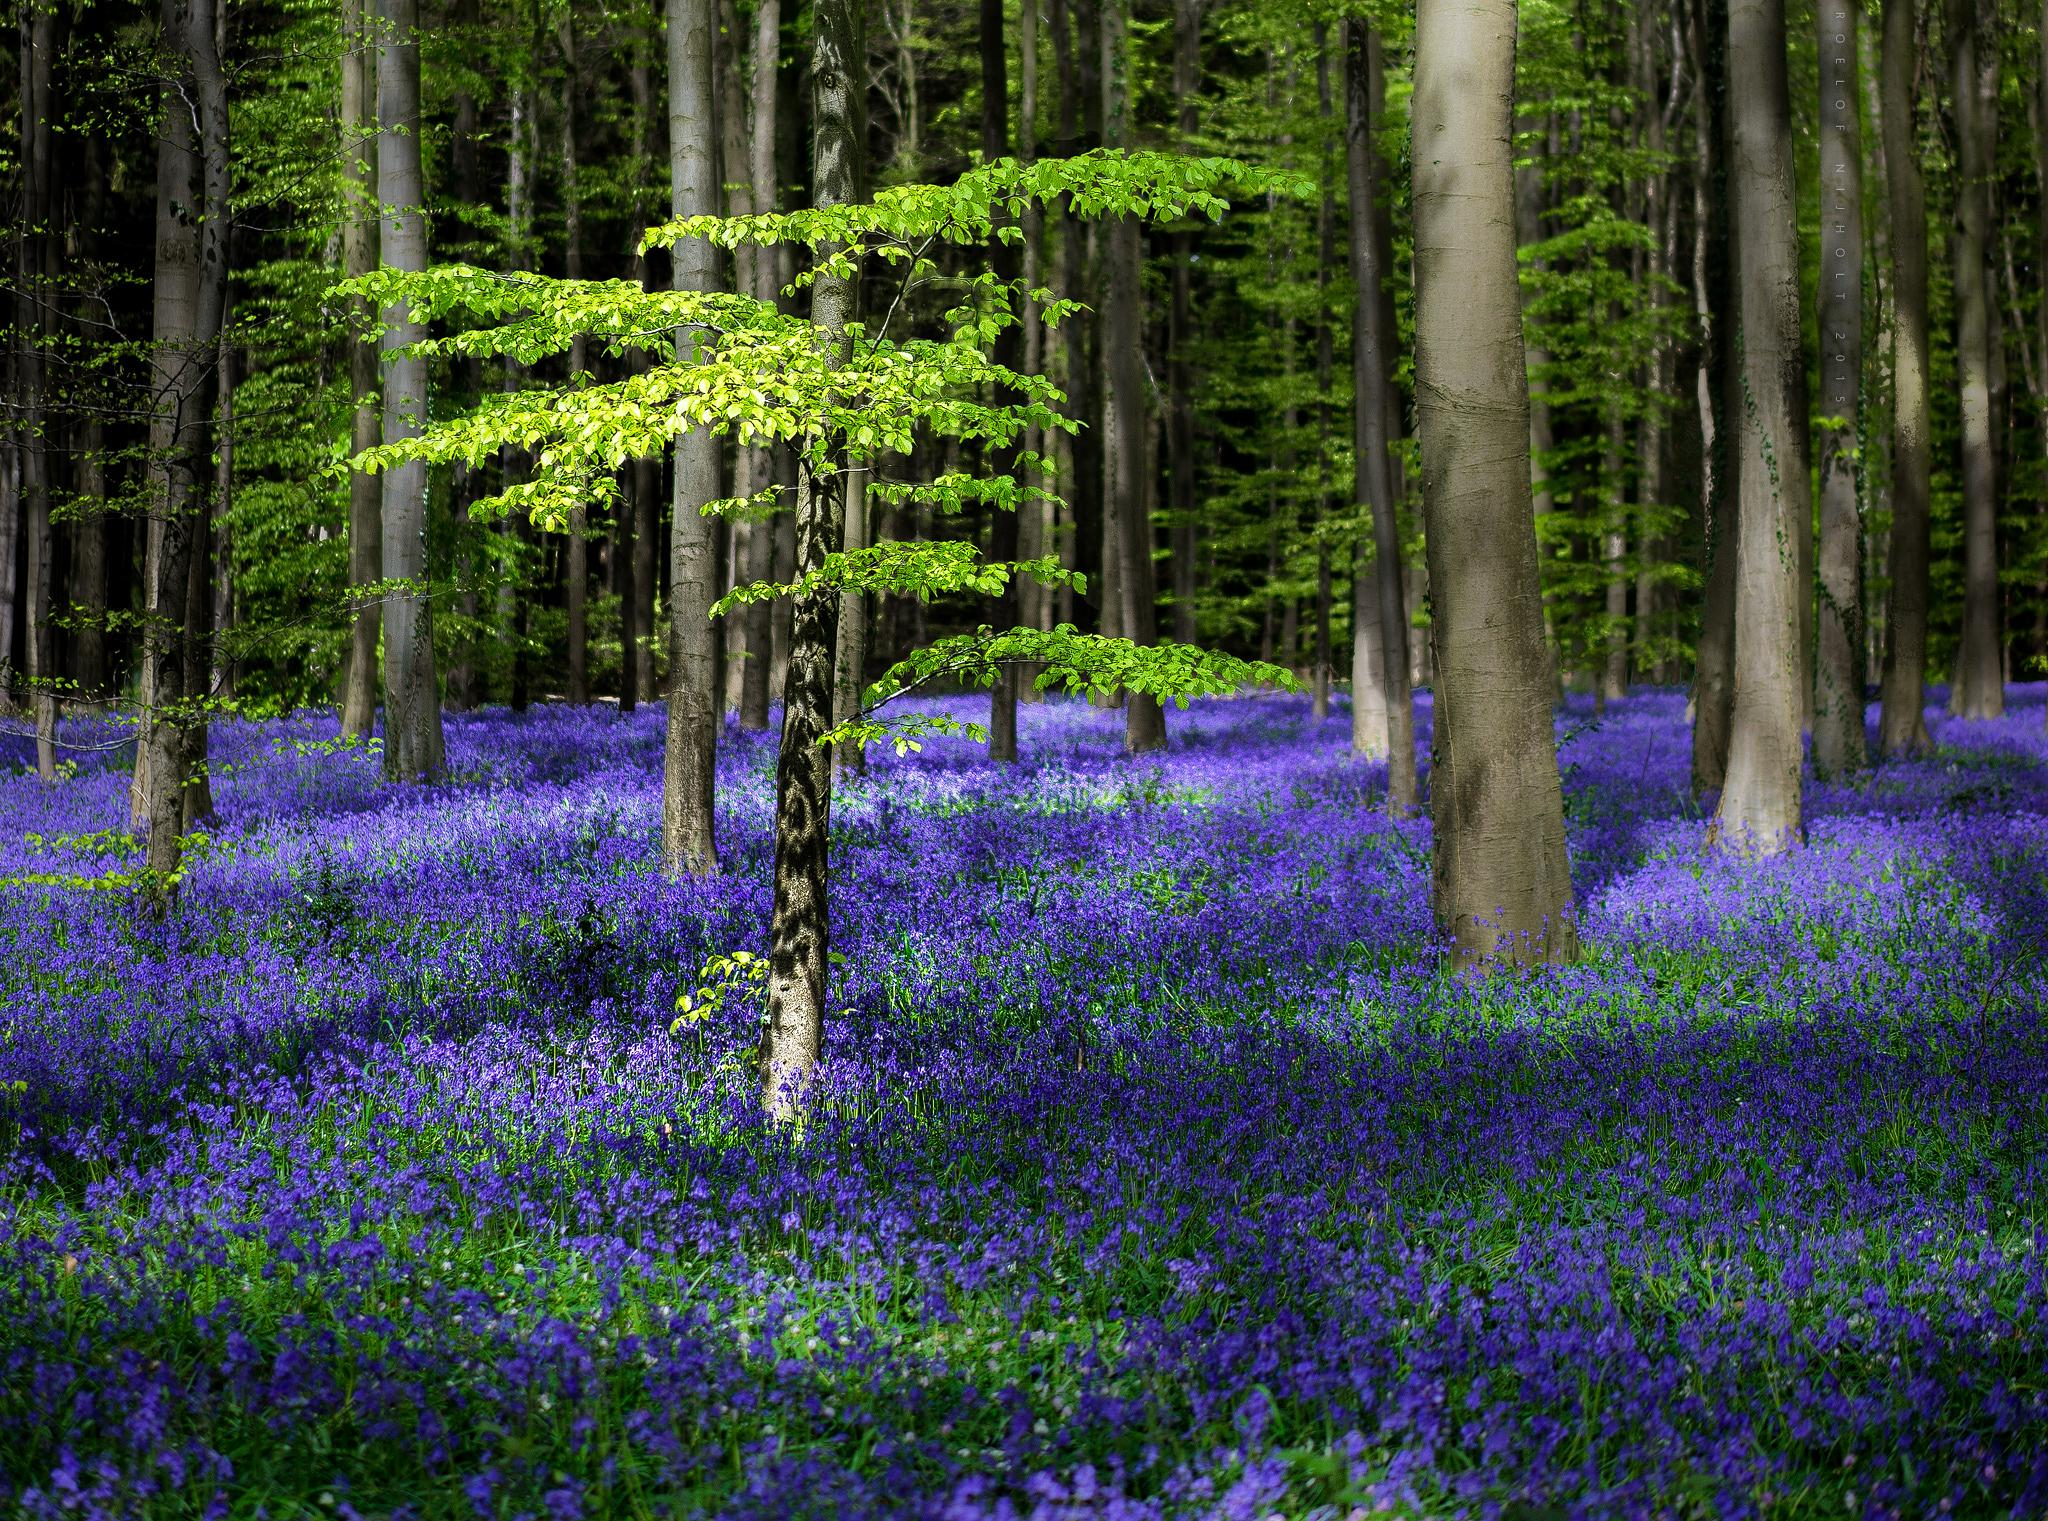 Enchanted forest by Roelof